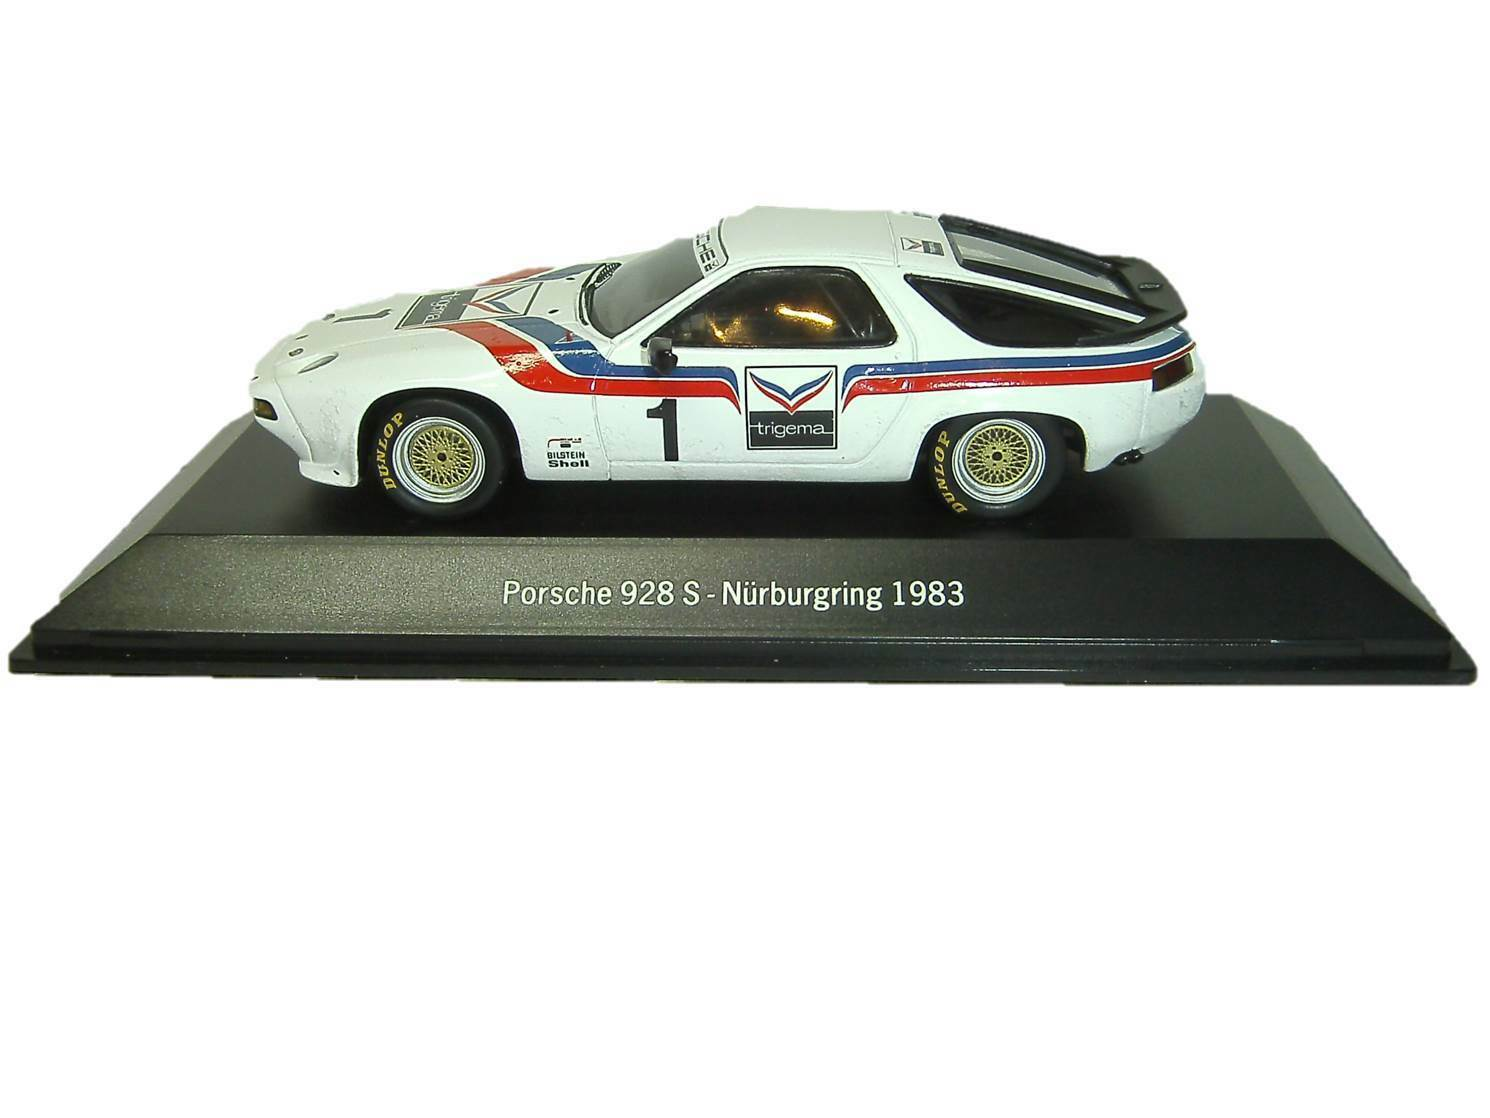 Porsche 928 S Nürburgring 1983 1983 1983 Spark 1 43 map02084116 BRAND NEW be4dce